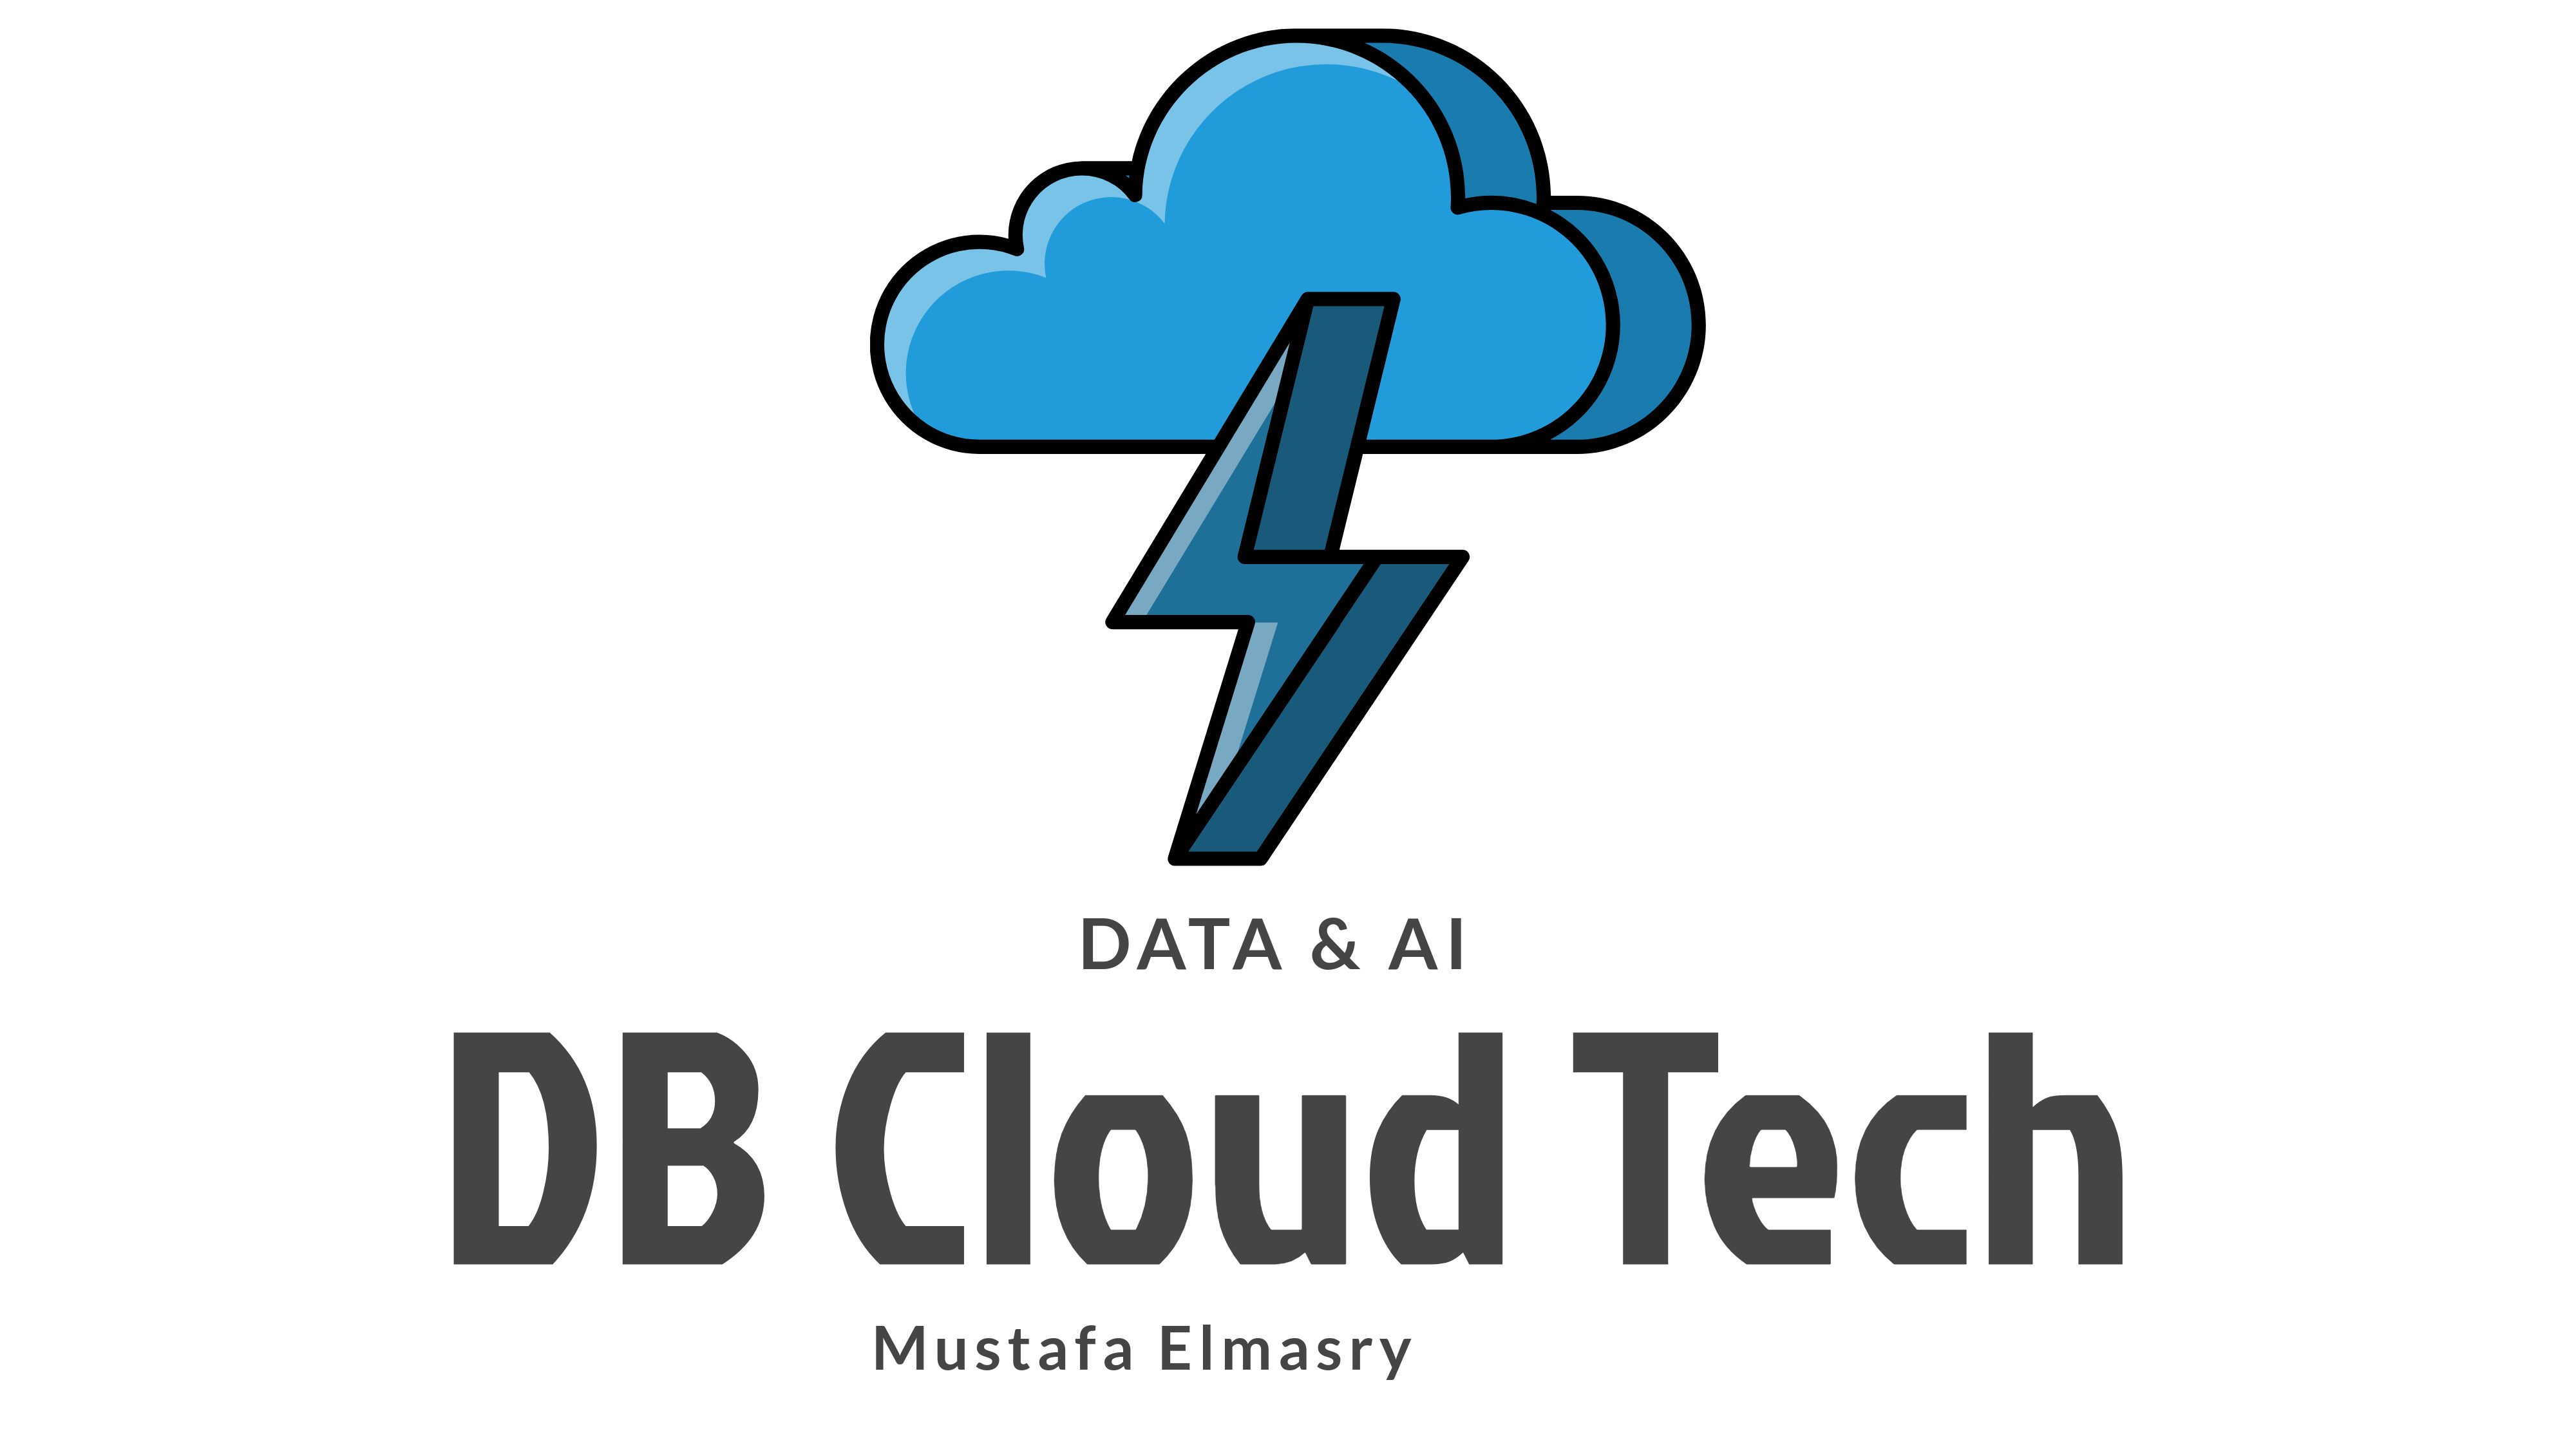 DB Cloud TECH